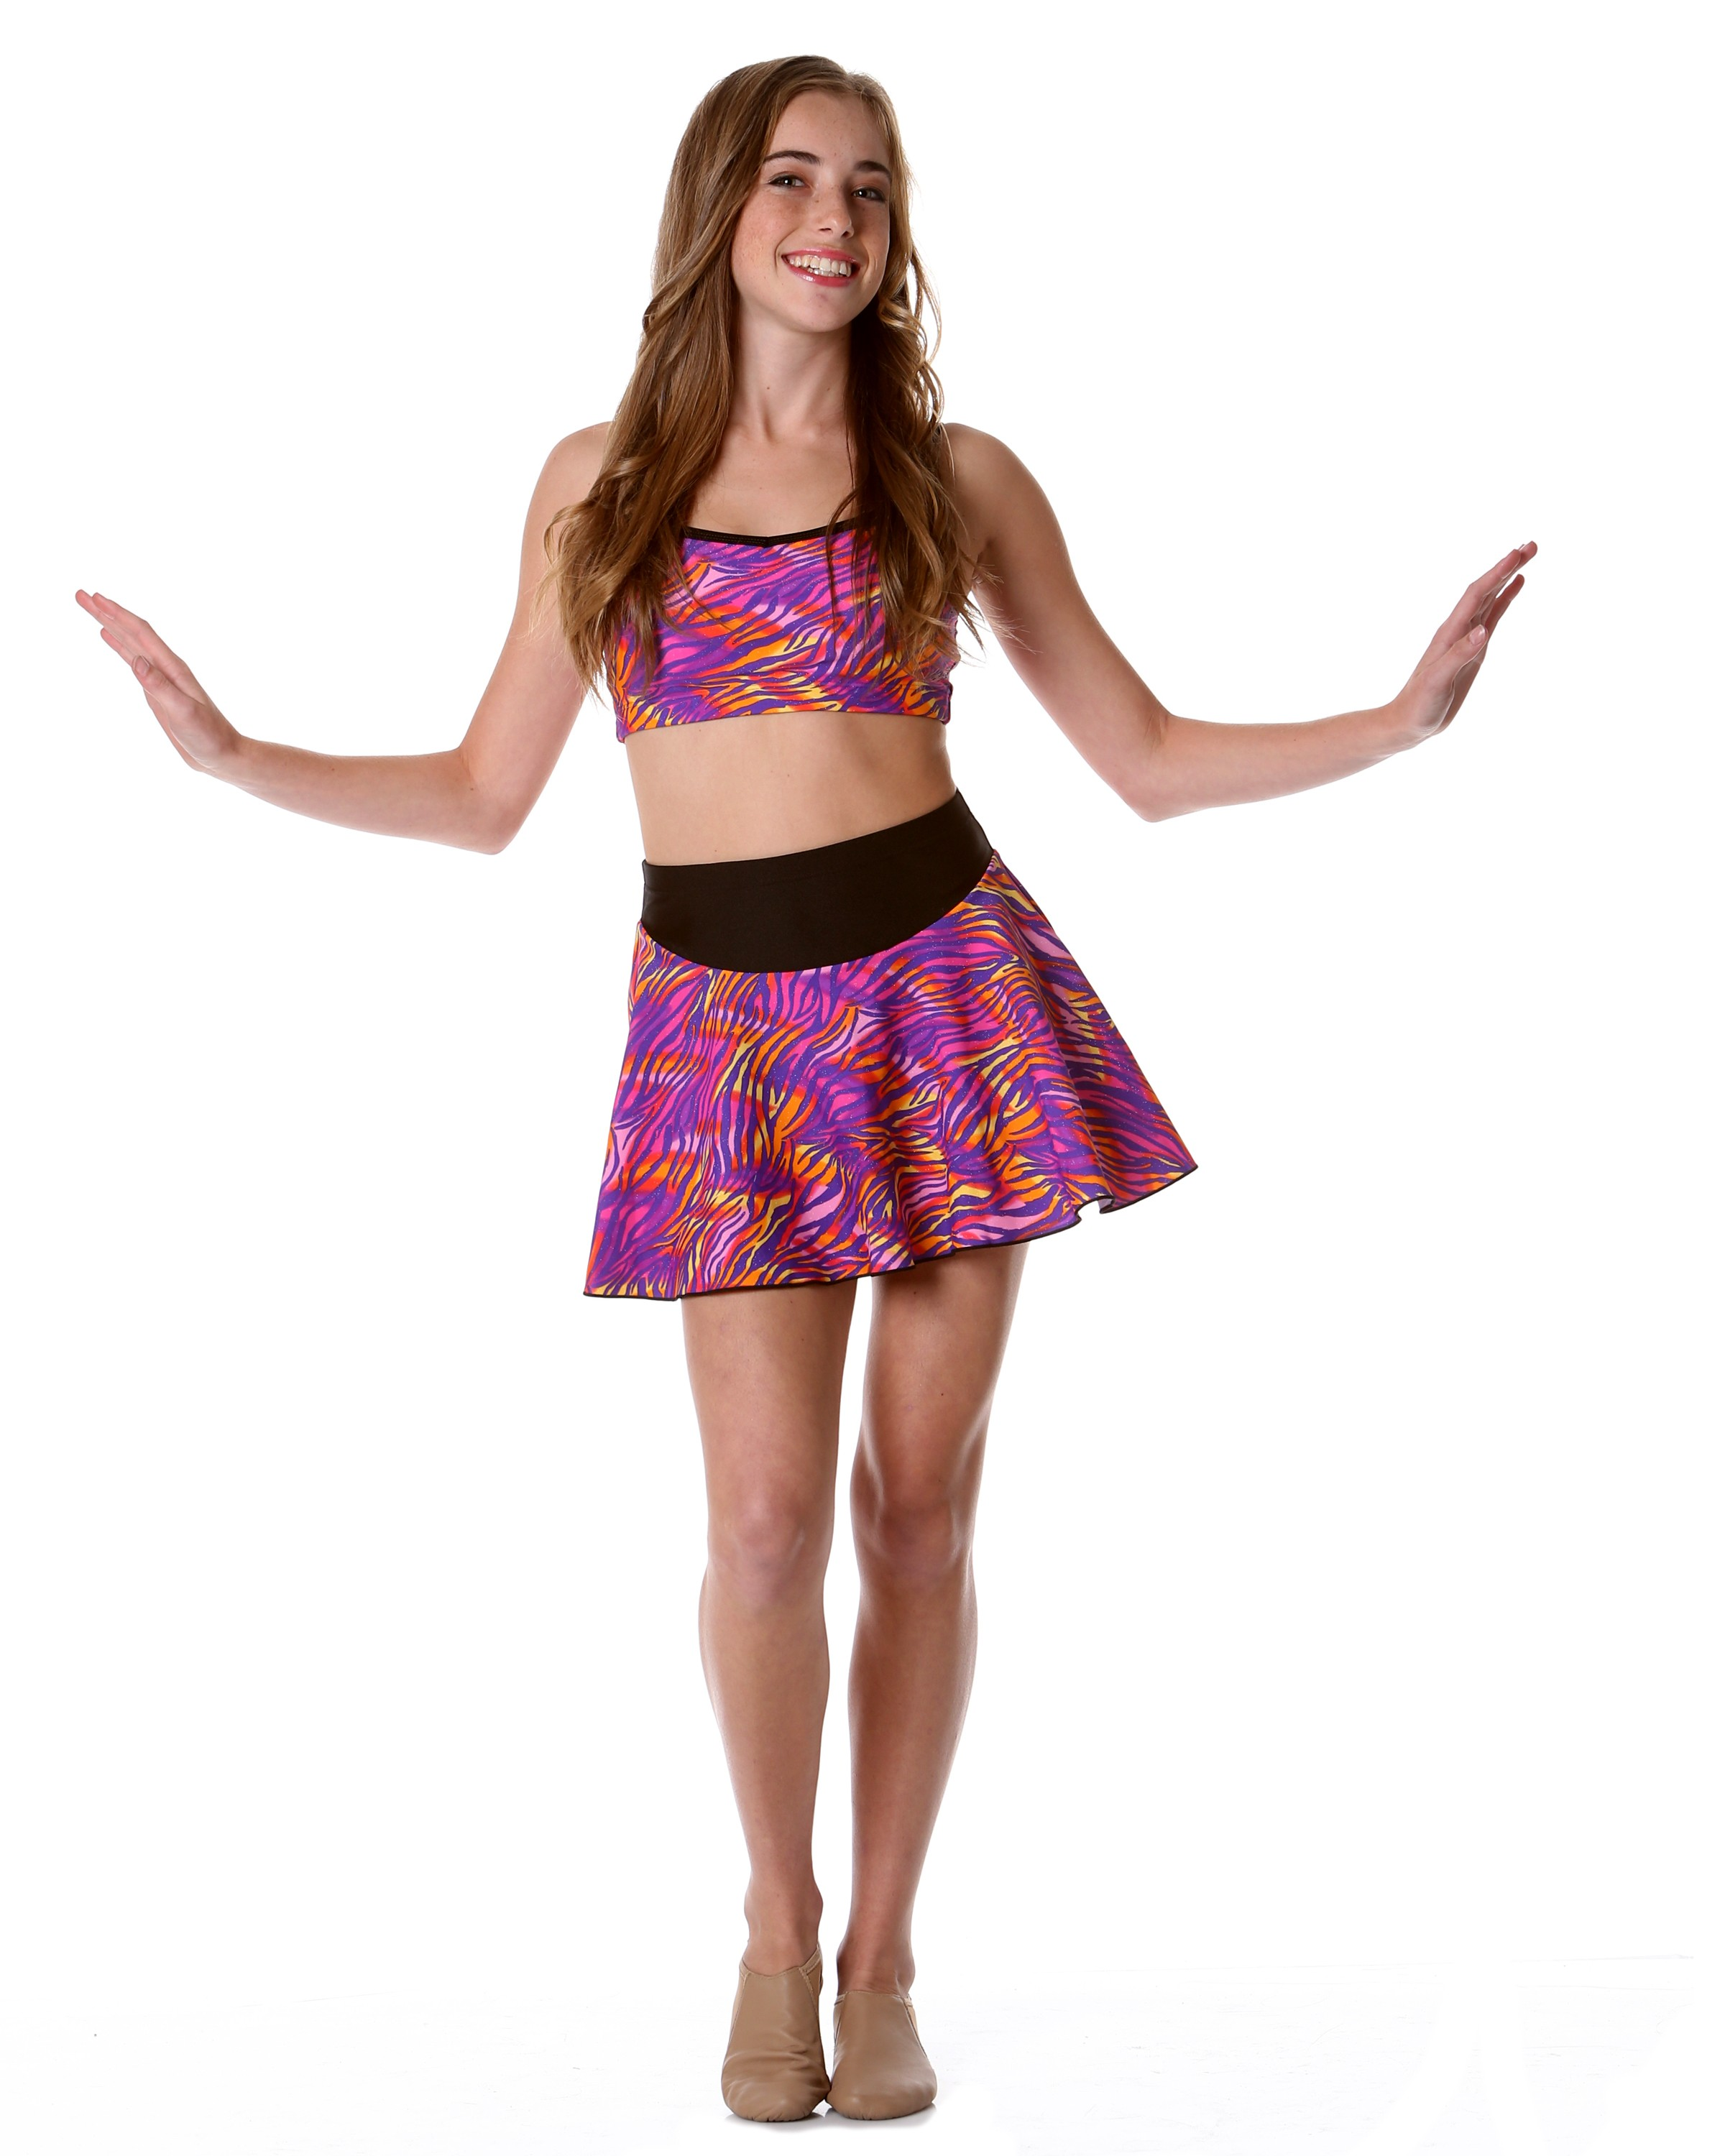 Studio 7 Safari Hot Skirt - Childs